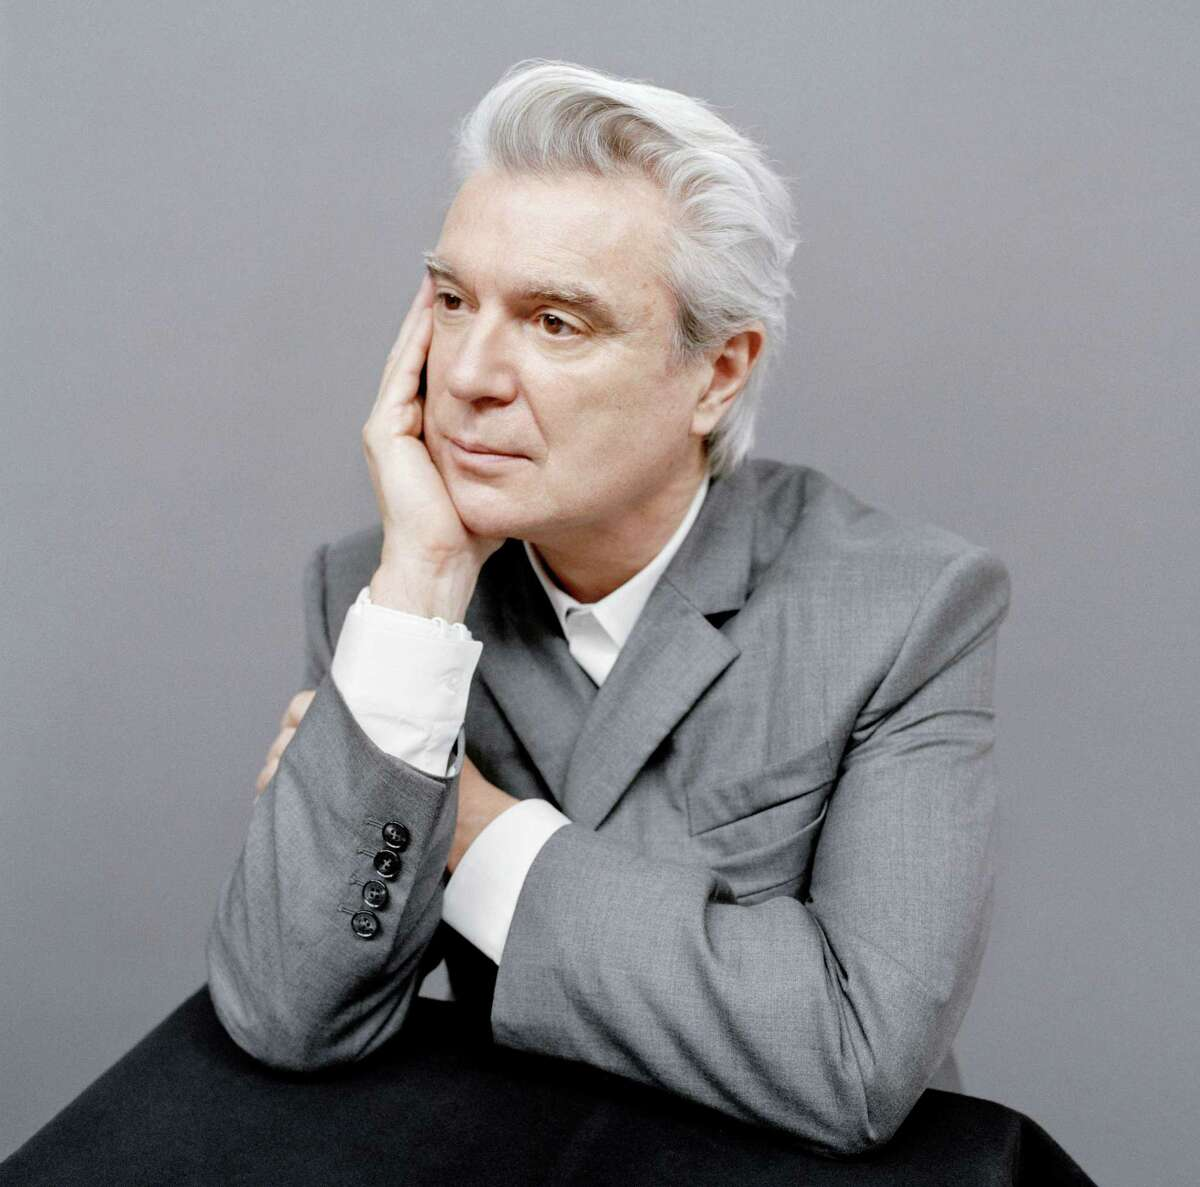 David Byrne Performing in San Antonio: Oct. 9 at The Tobin Center Performing in Austin: Oct. 5 & Oct. 12